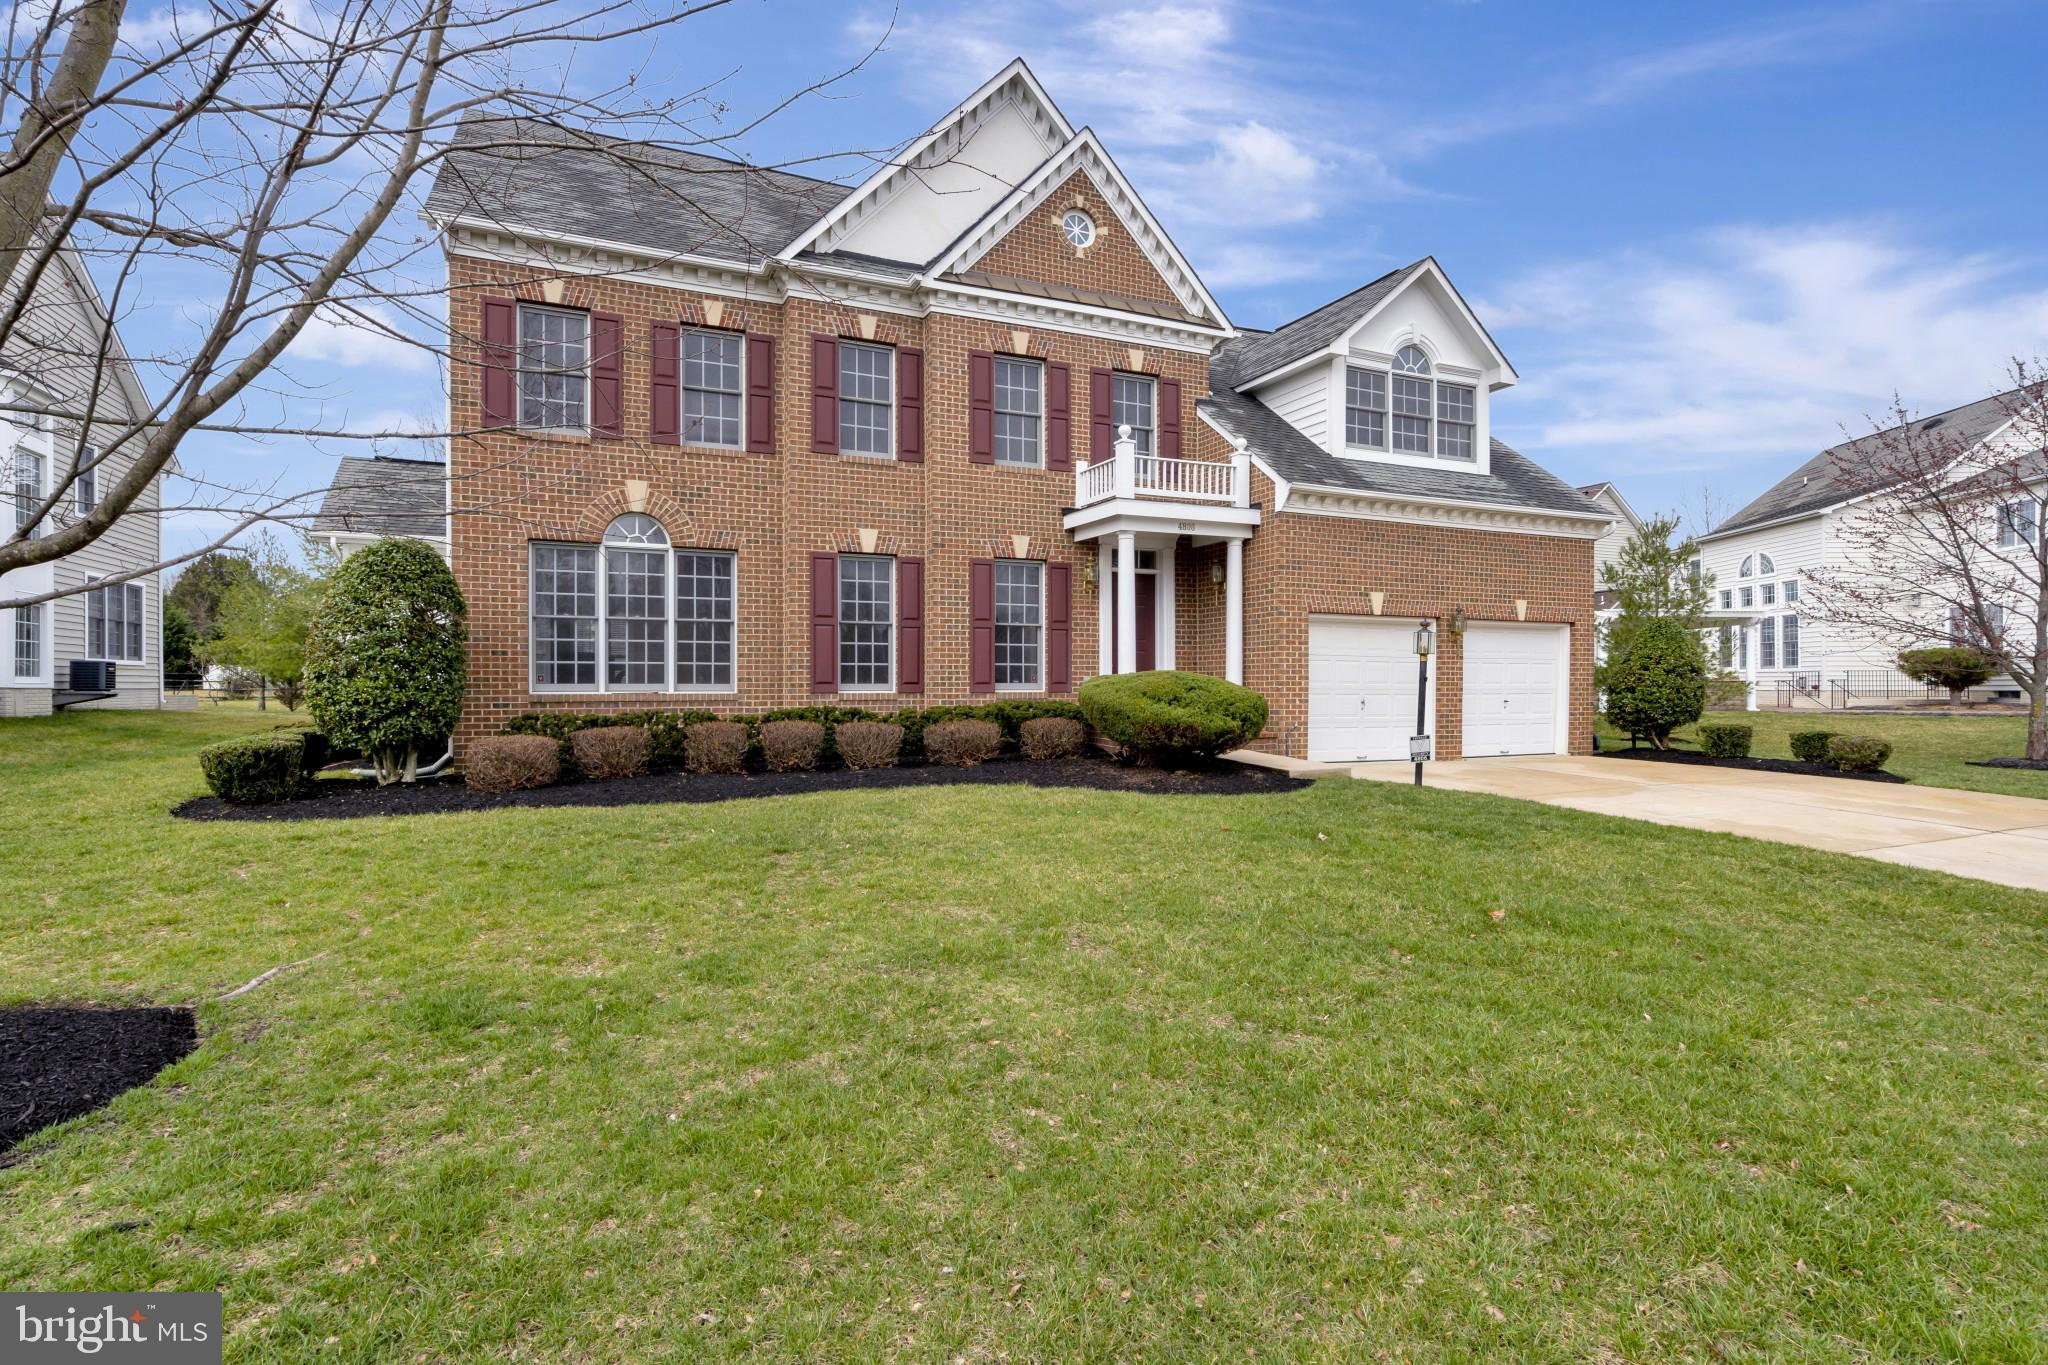 4806 BARTLETTS VISION DRIVE, BOWIE, MD 20720